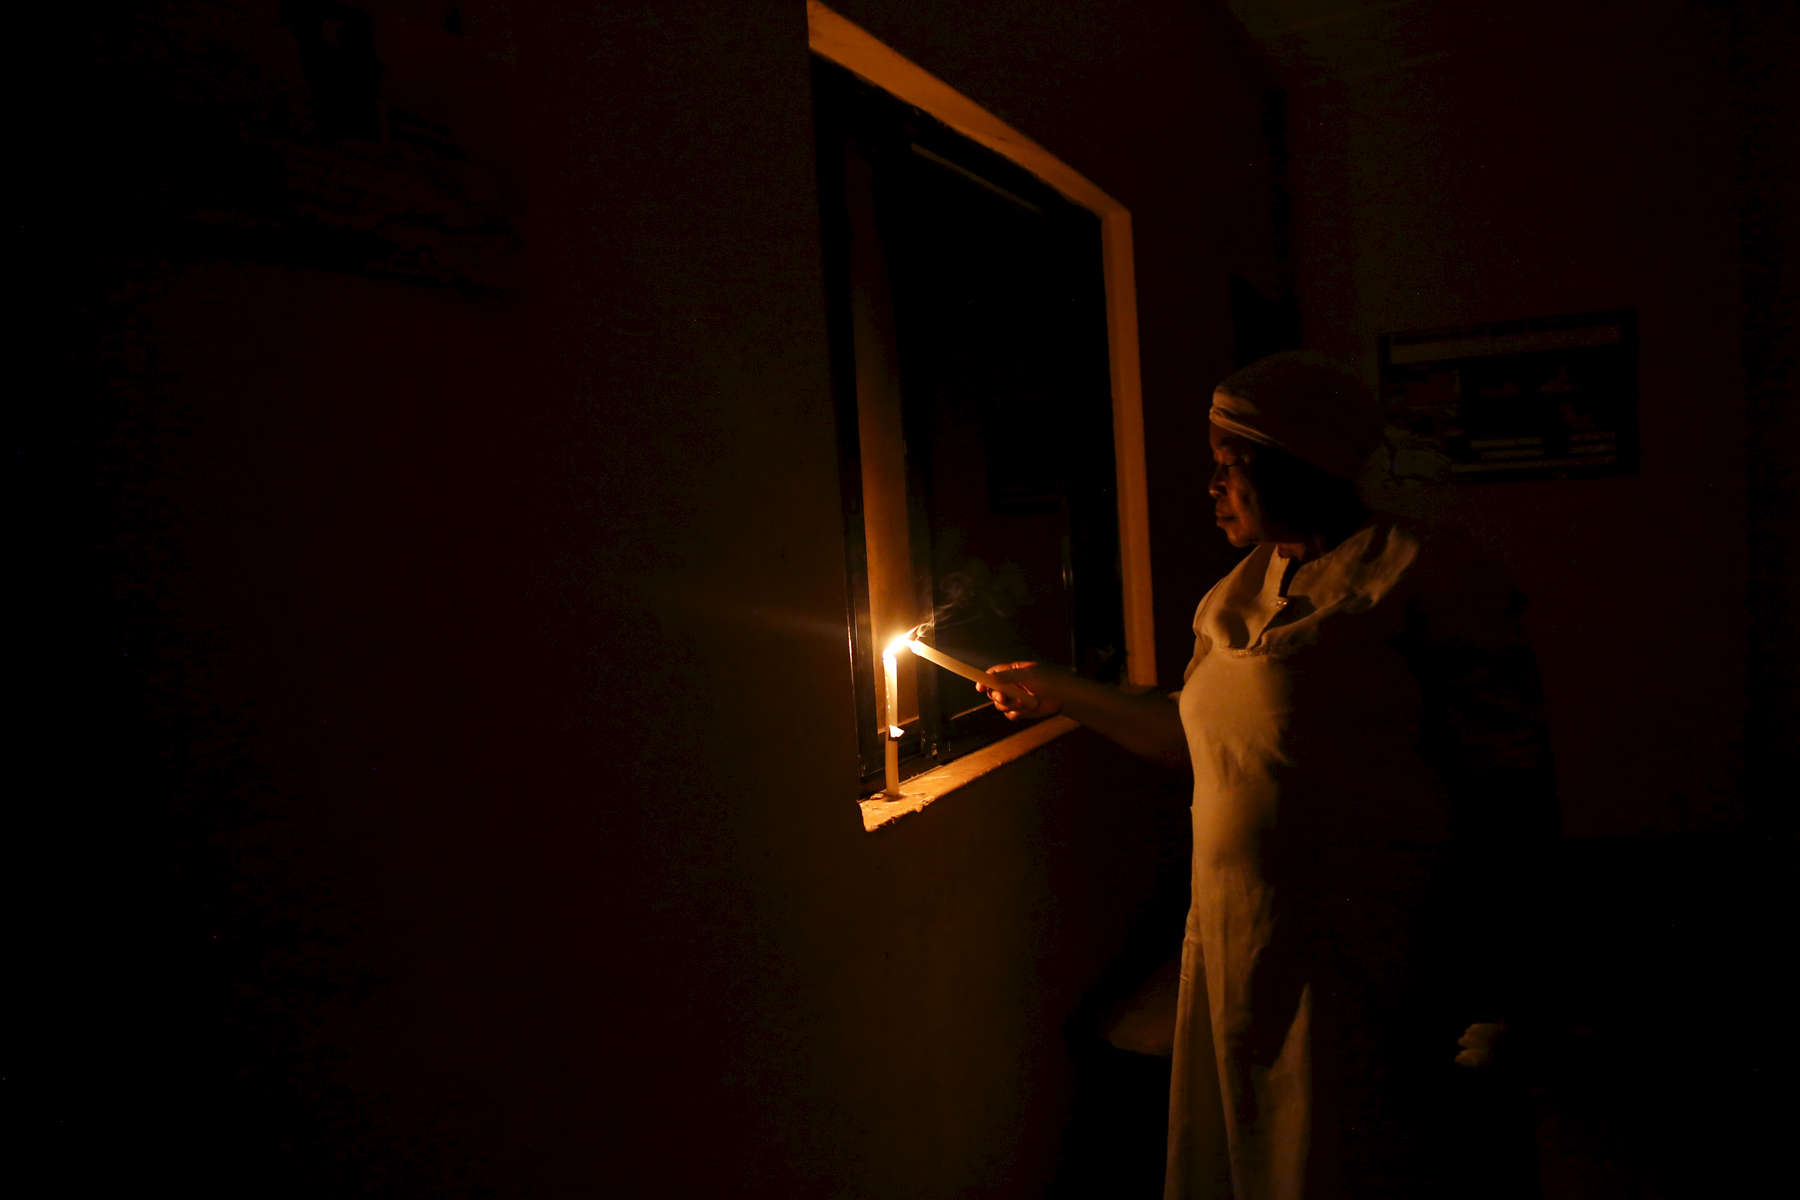 Nurse Williams light a candle at night during a power outage at the medical facility of Kuchigoro in Abuja, Nigeria.